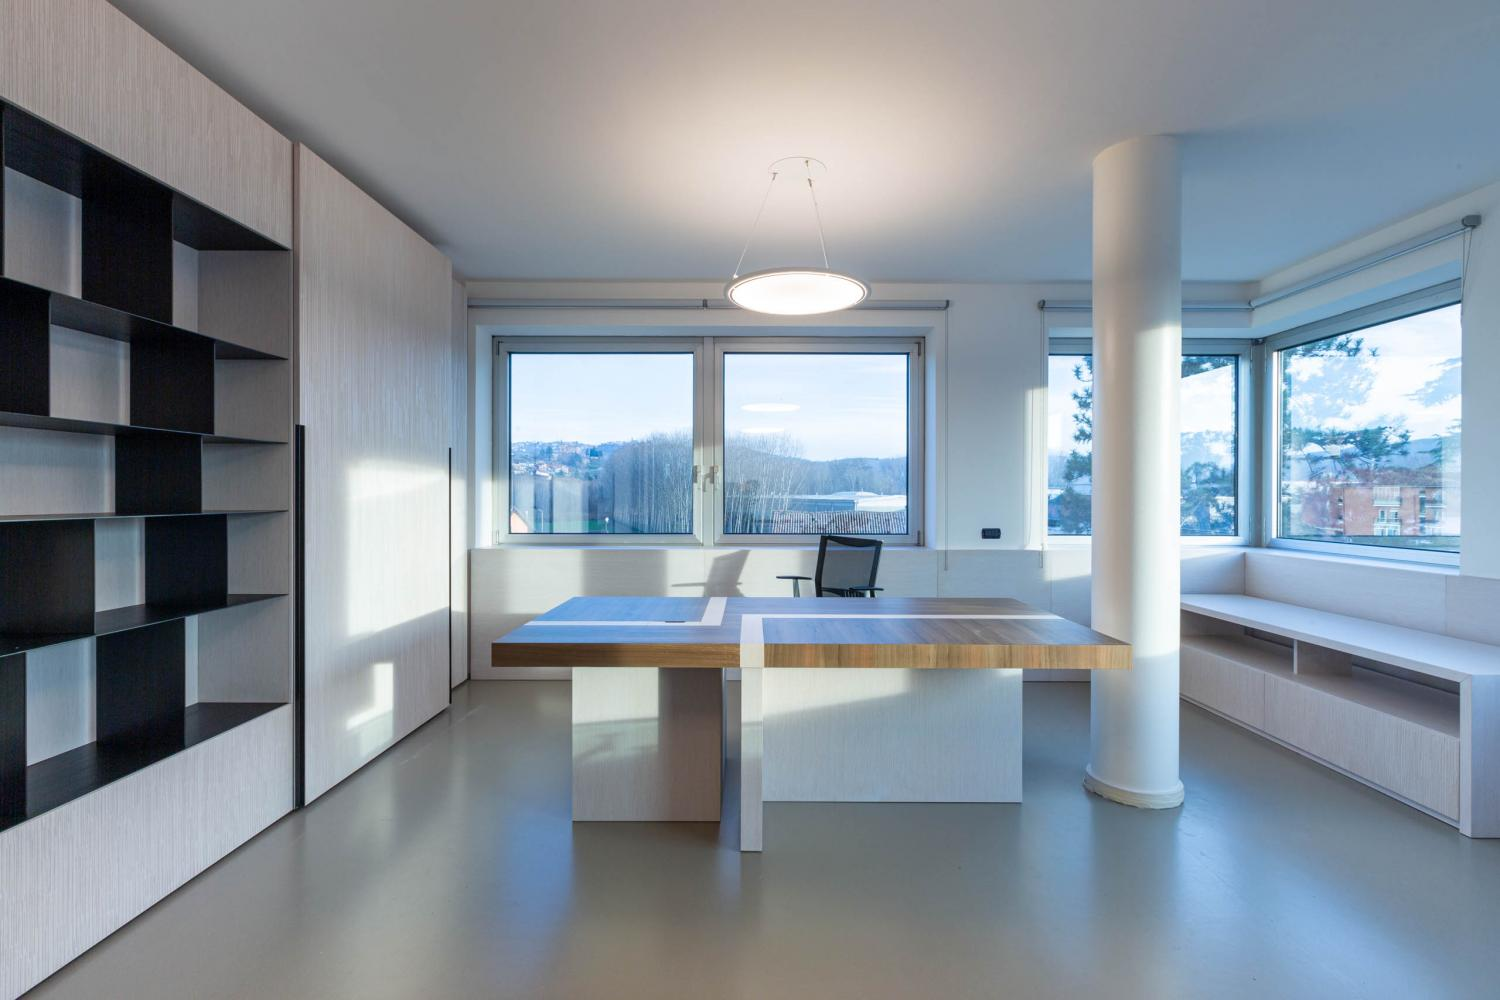 Laurameroni corporate office interior design wooden inlaid wall panels and rectangular table for a luxury modern furnishing